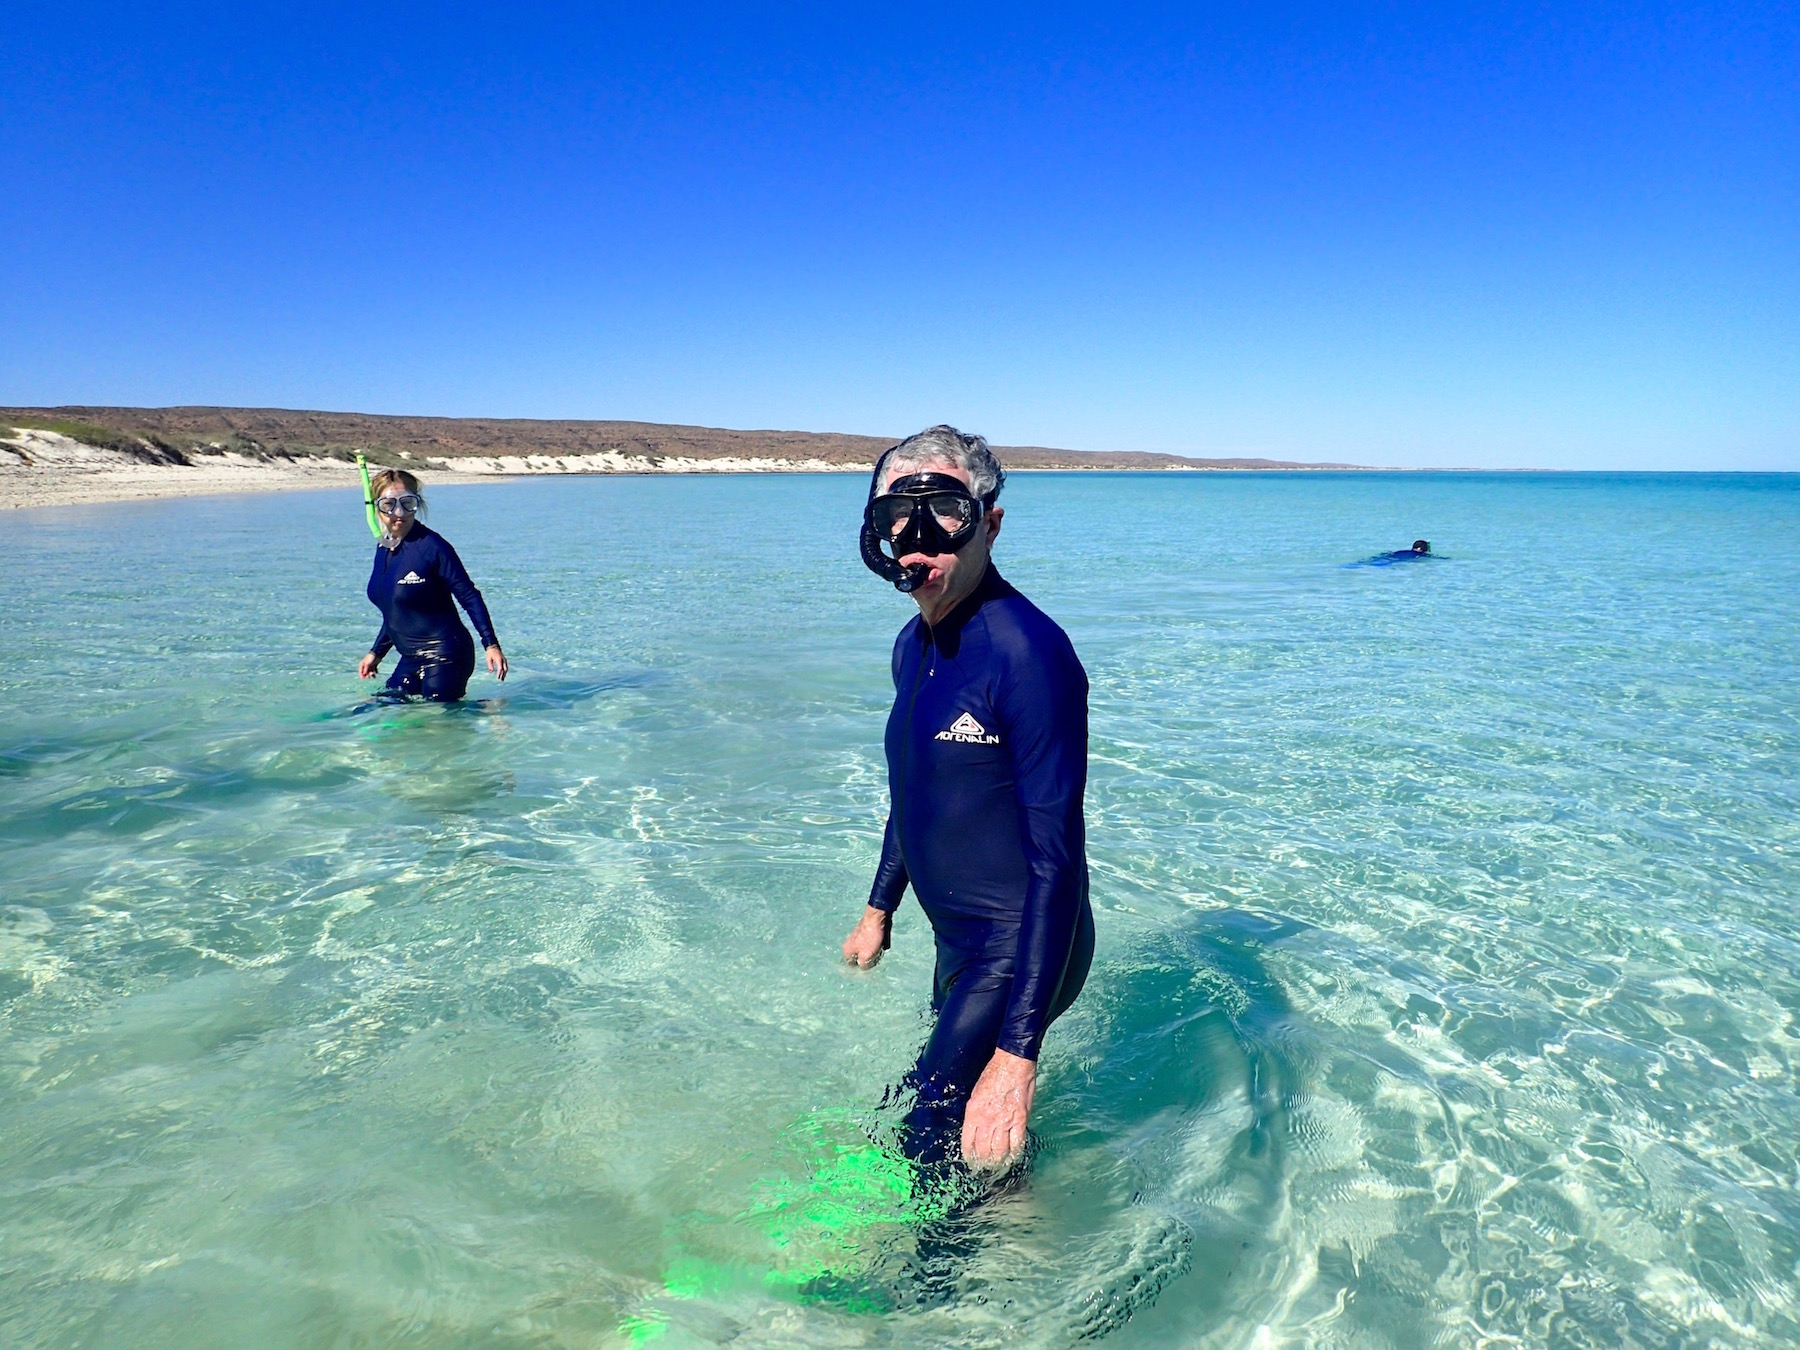 Turquoise Bay Snorkel Tour, Turquoise Bay snorkel, snorkel Turquoise Bay, snorkel, snorkel Ningaloo, Ningaloo Reef snorkelling, Exmouth Adventure Co, guided snorkel tour, Exmouth, Western Australia, Ningaloo Reef, Cape Range National Park